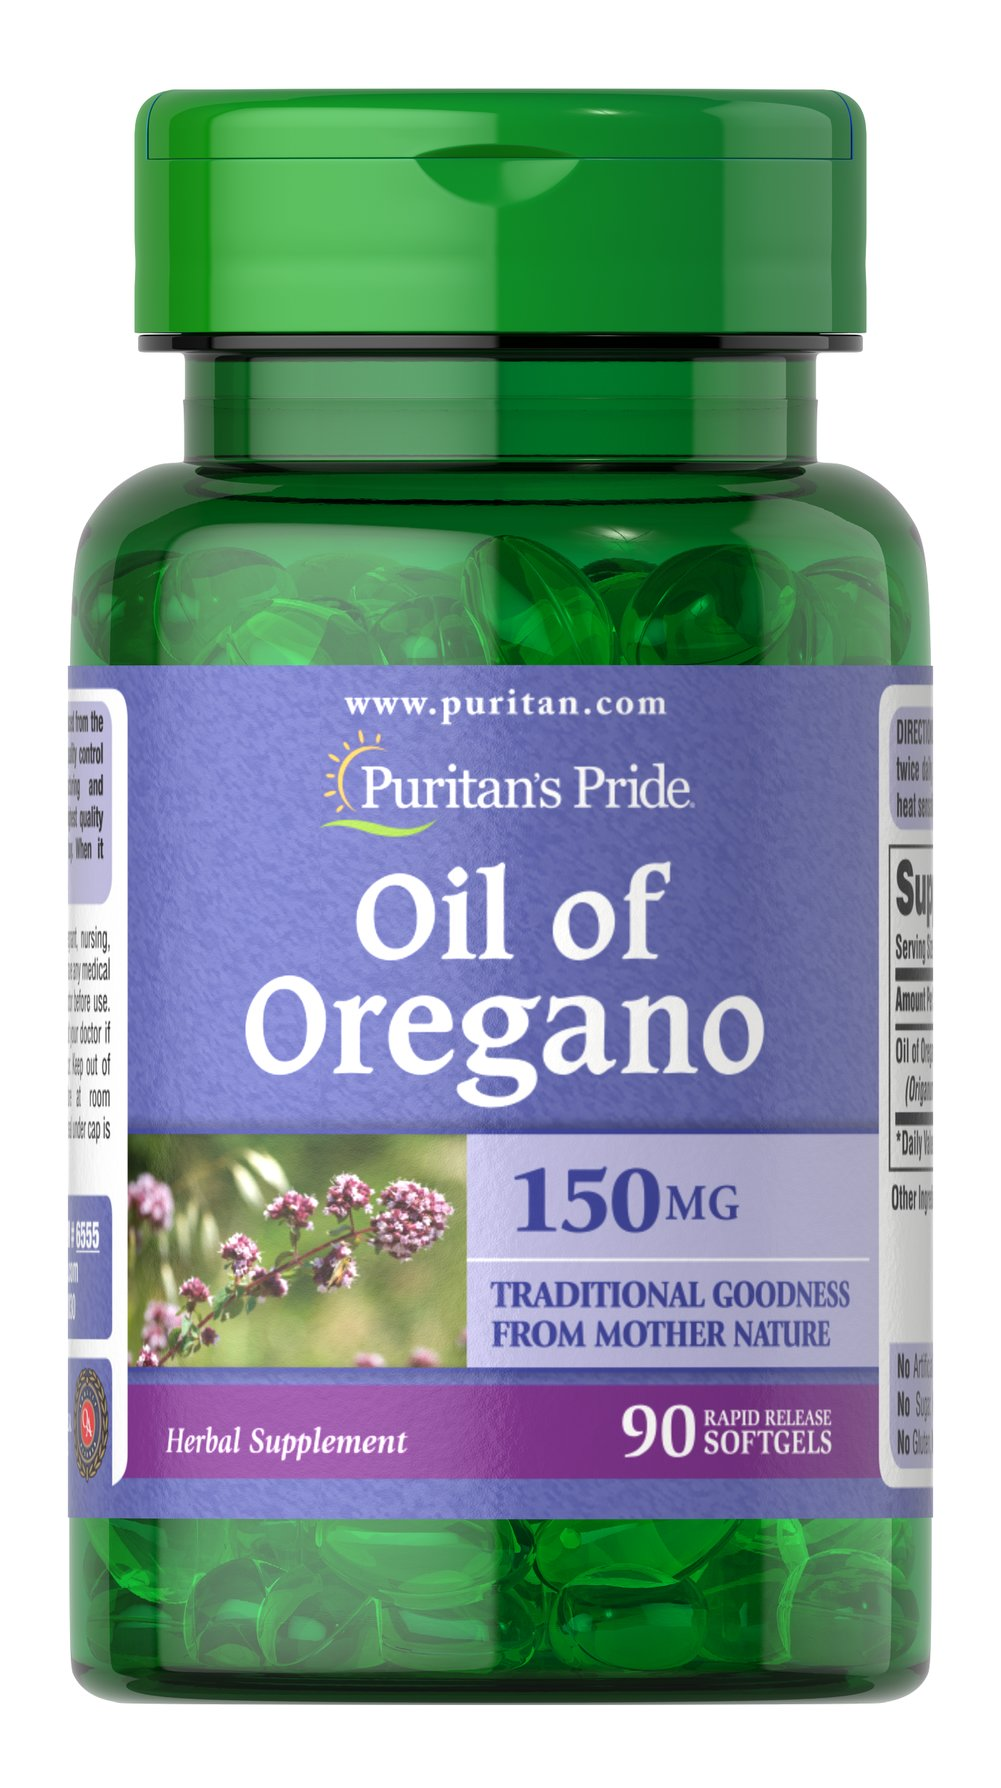 Oil of Oregano Extract 1500 mg  90 Softgels 1500 mg $8.99